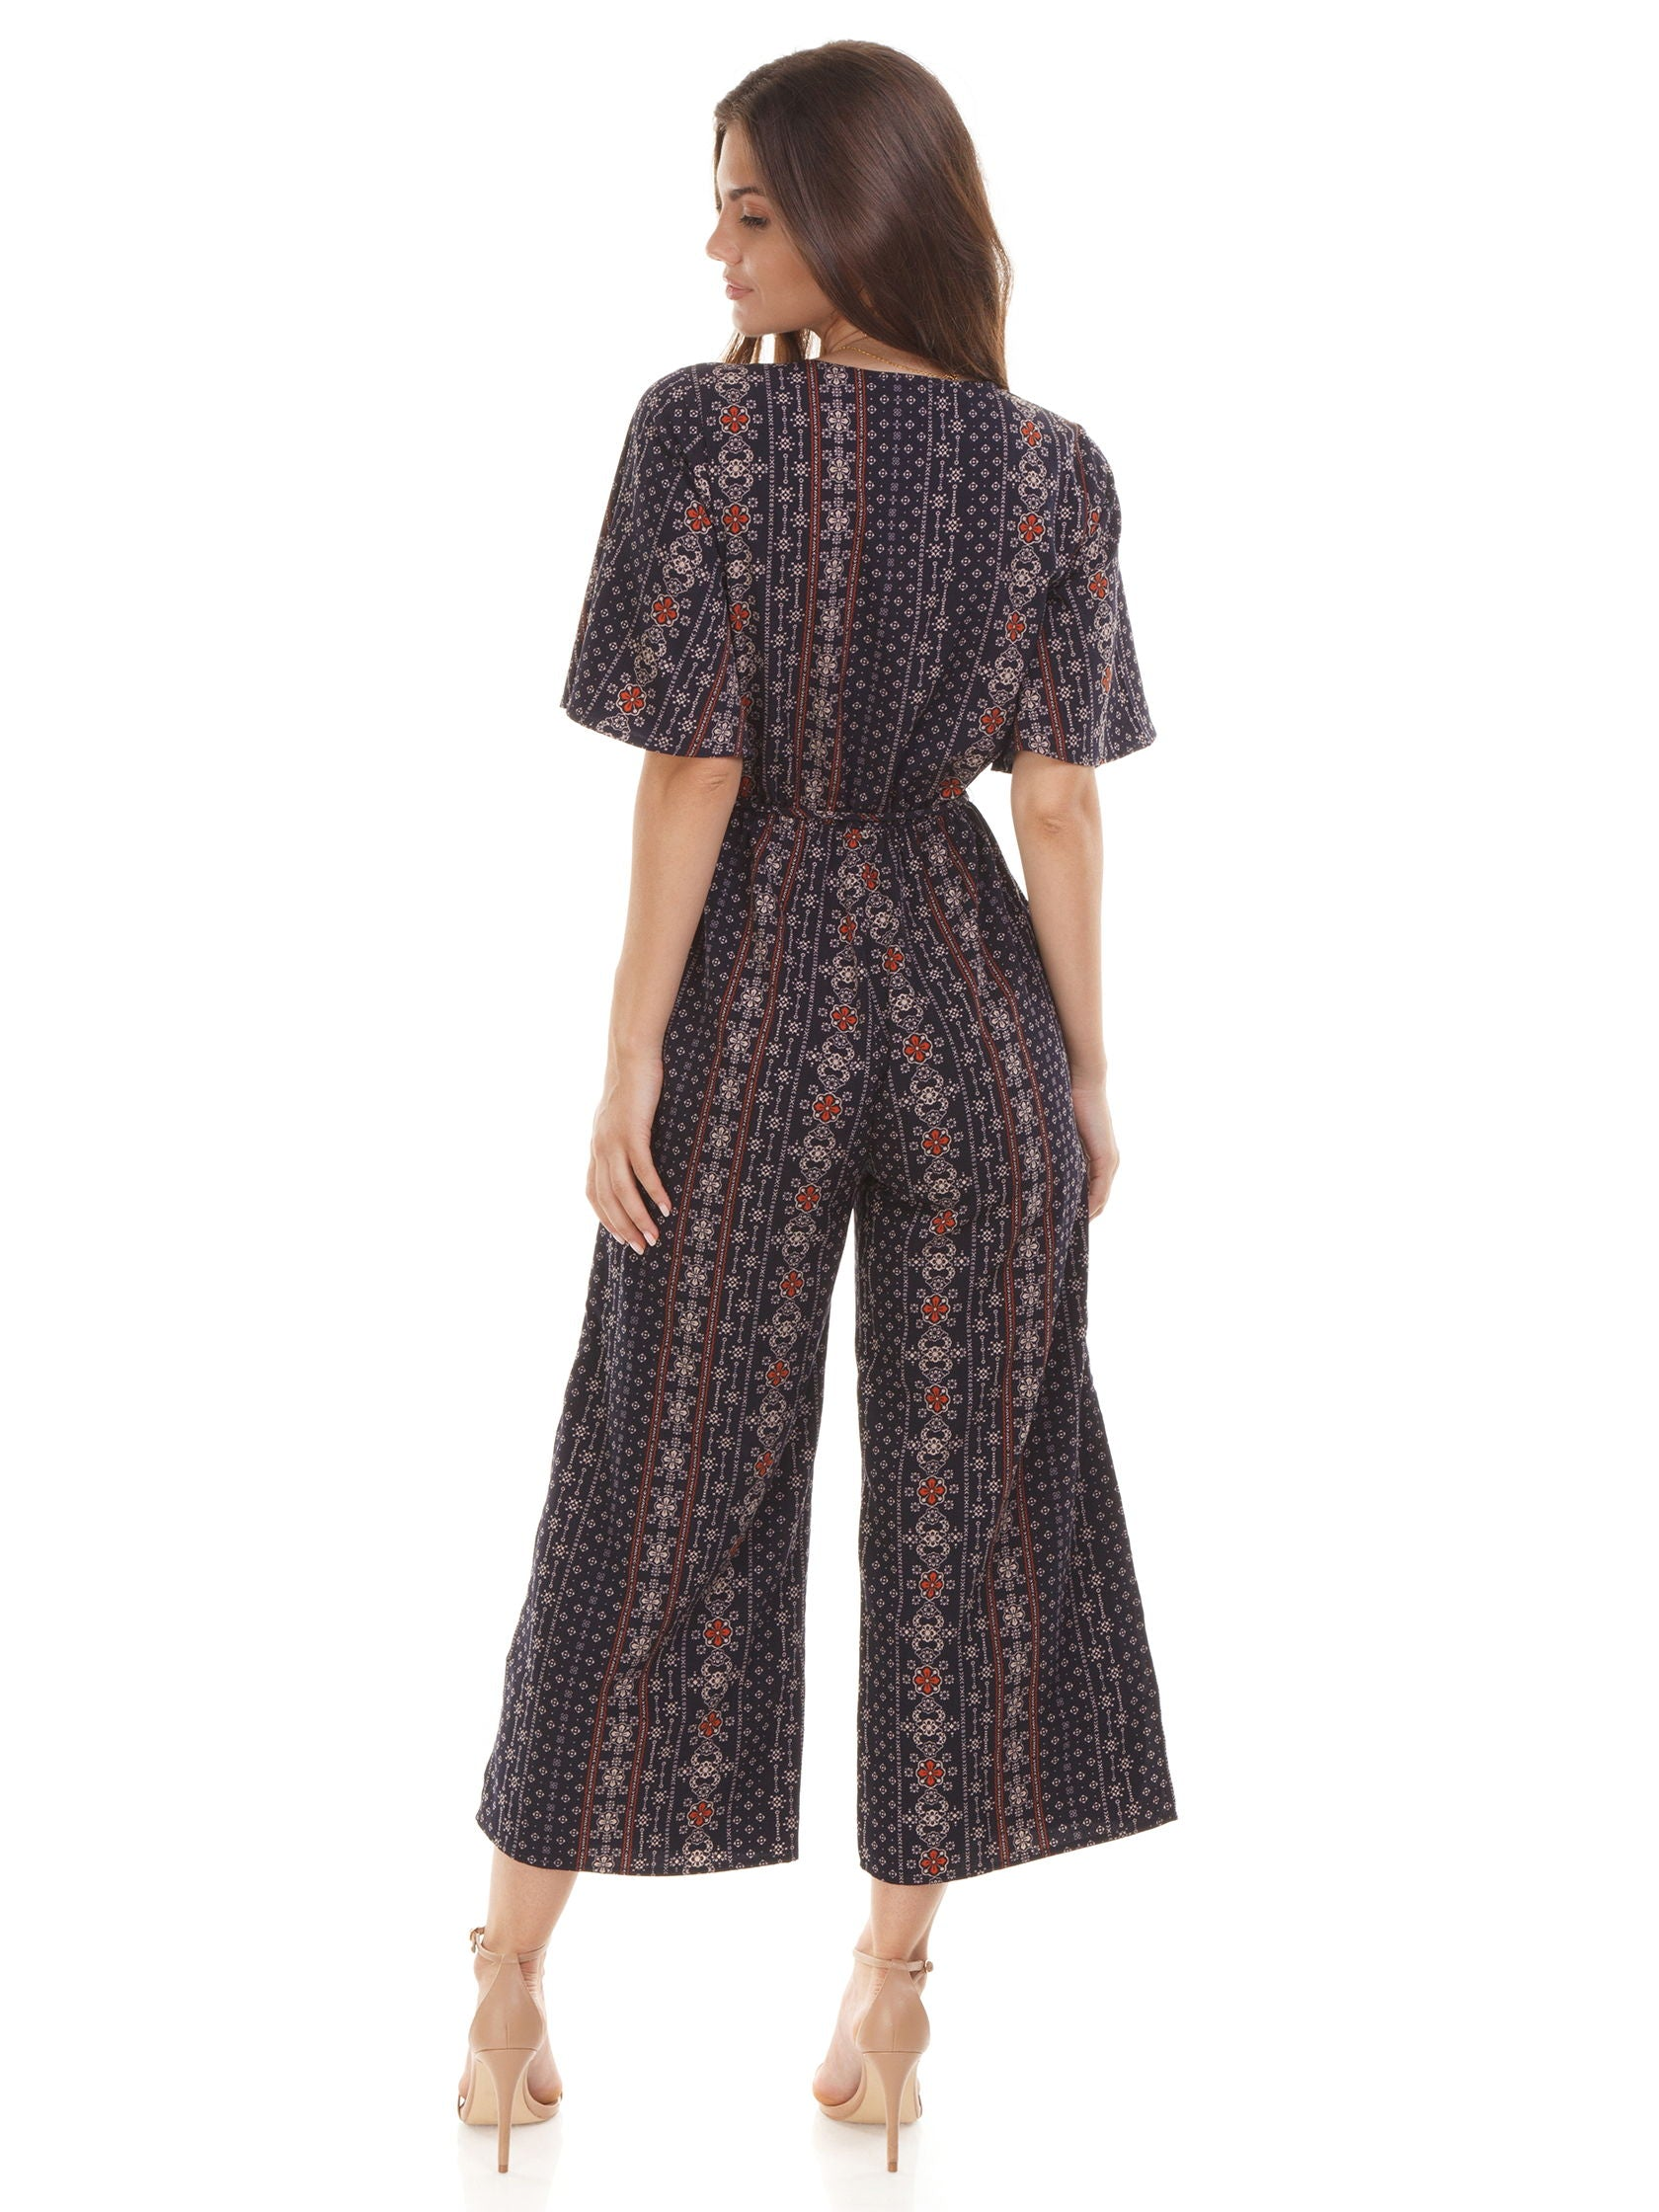 Women wearing a jumpsuit rental from Moon River called Flutter Sleeve Wide Leg Jumpsuit